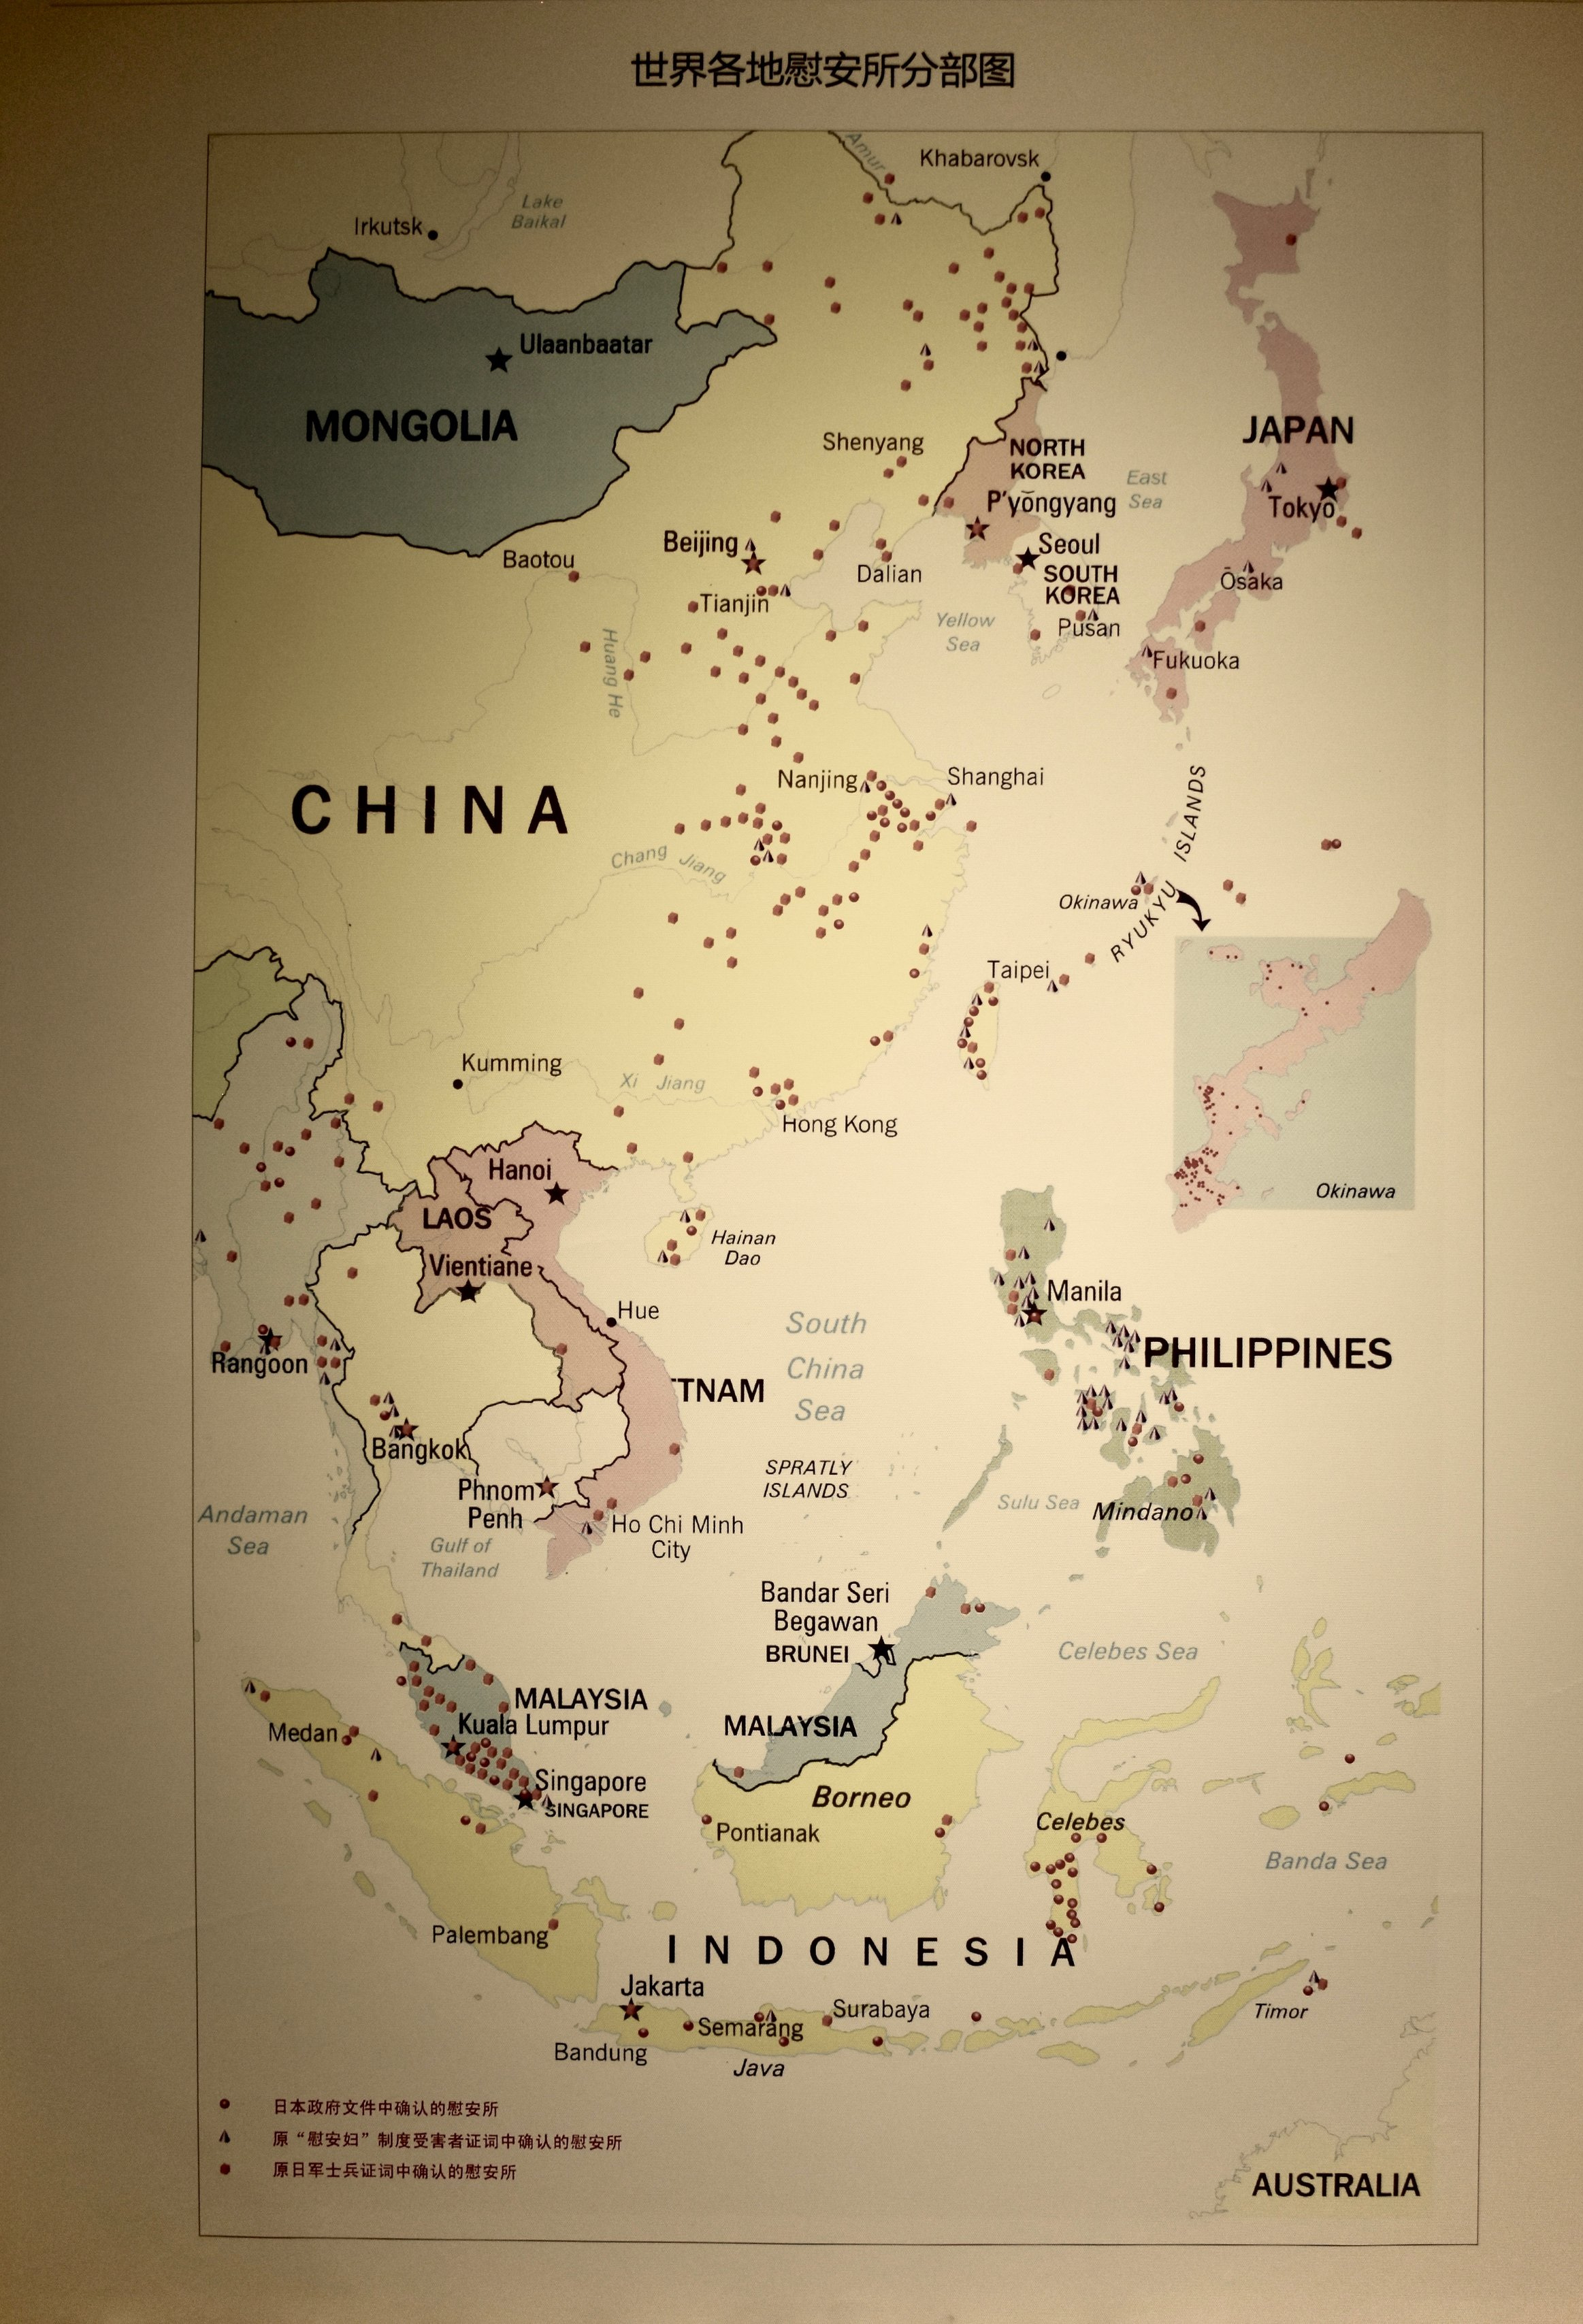 Map of Asia - red dots are known comfort station locations